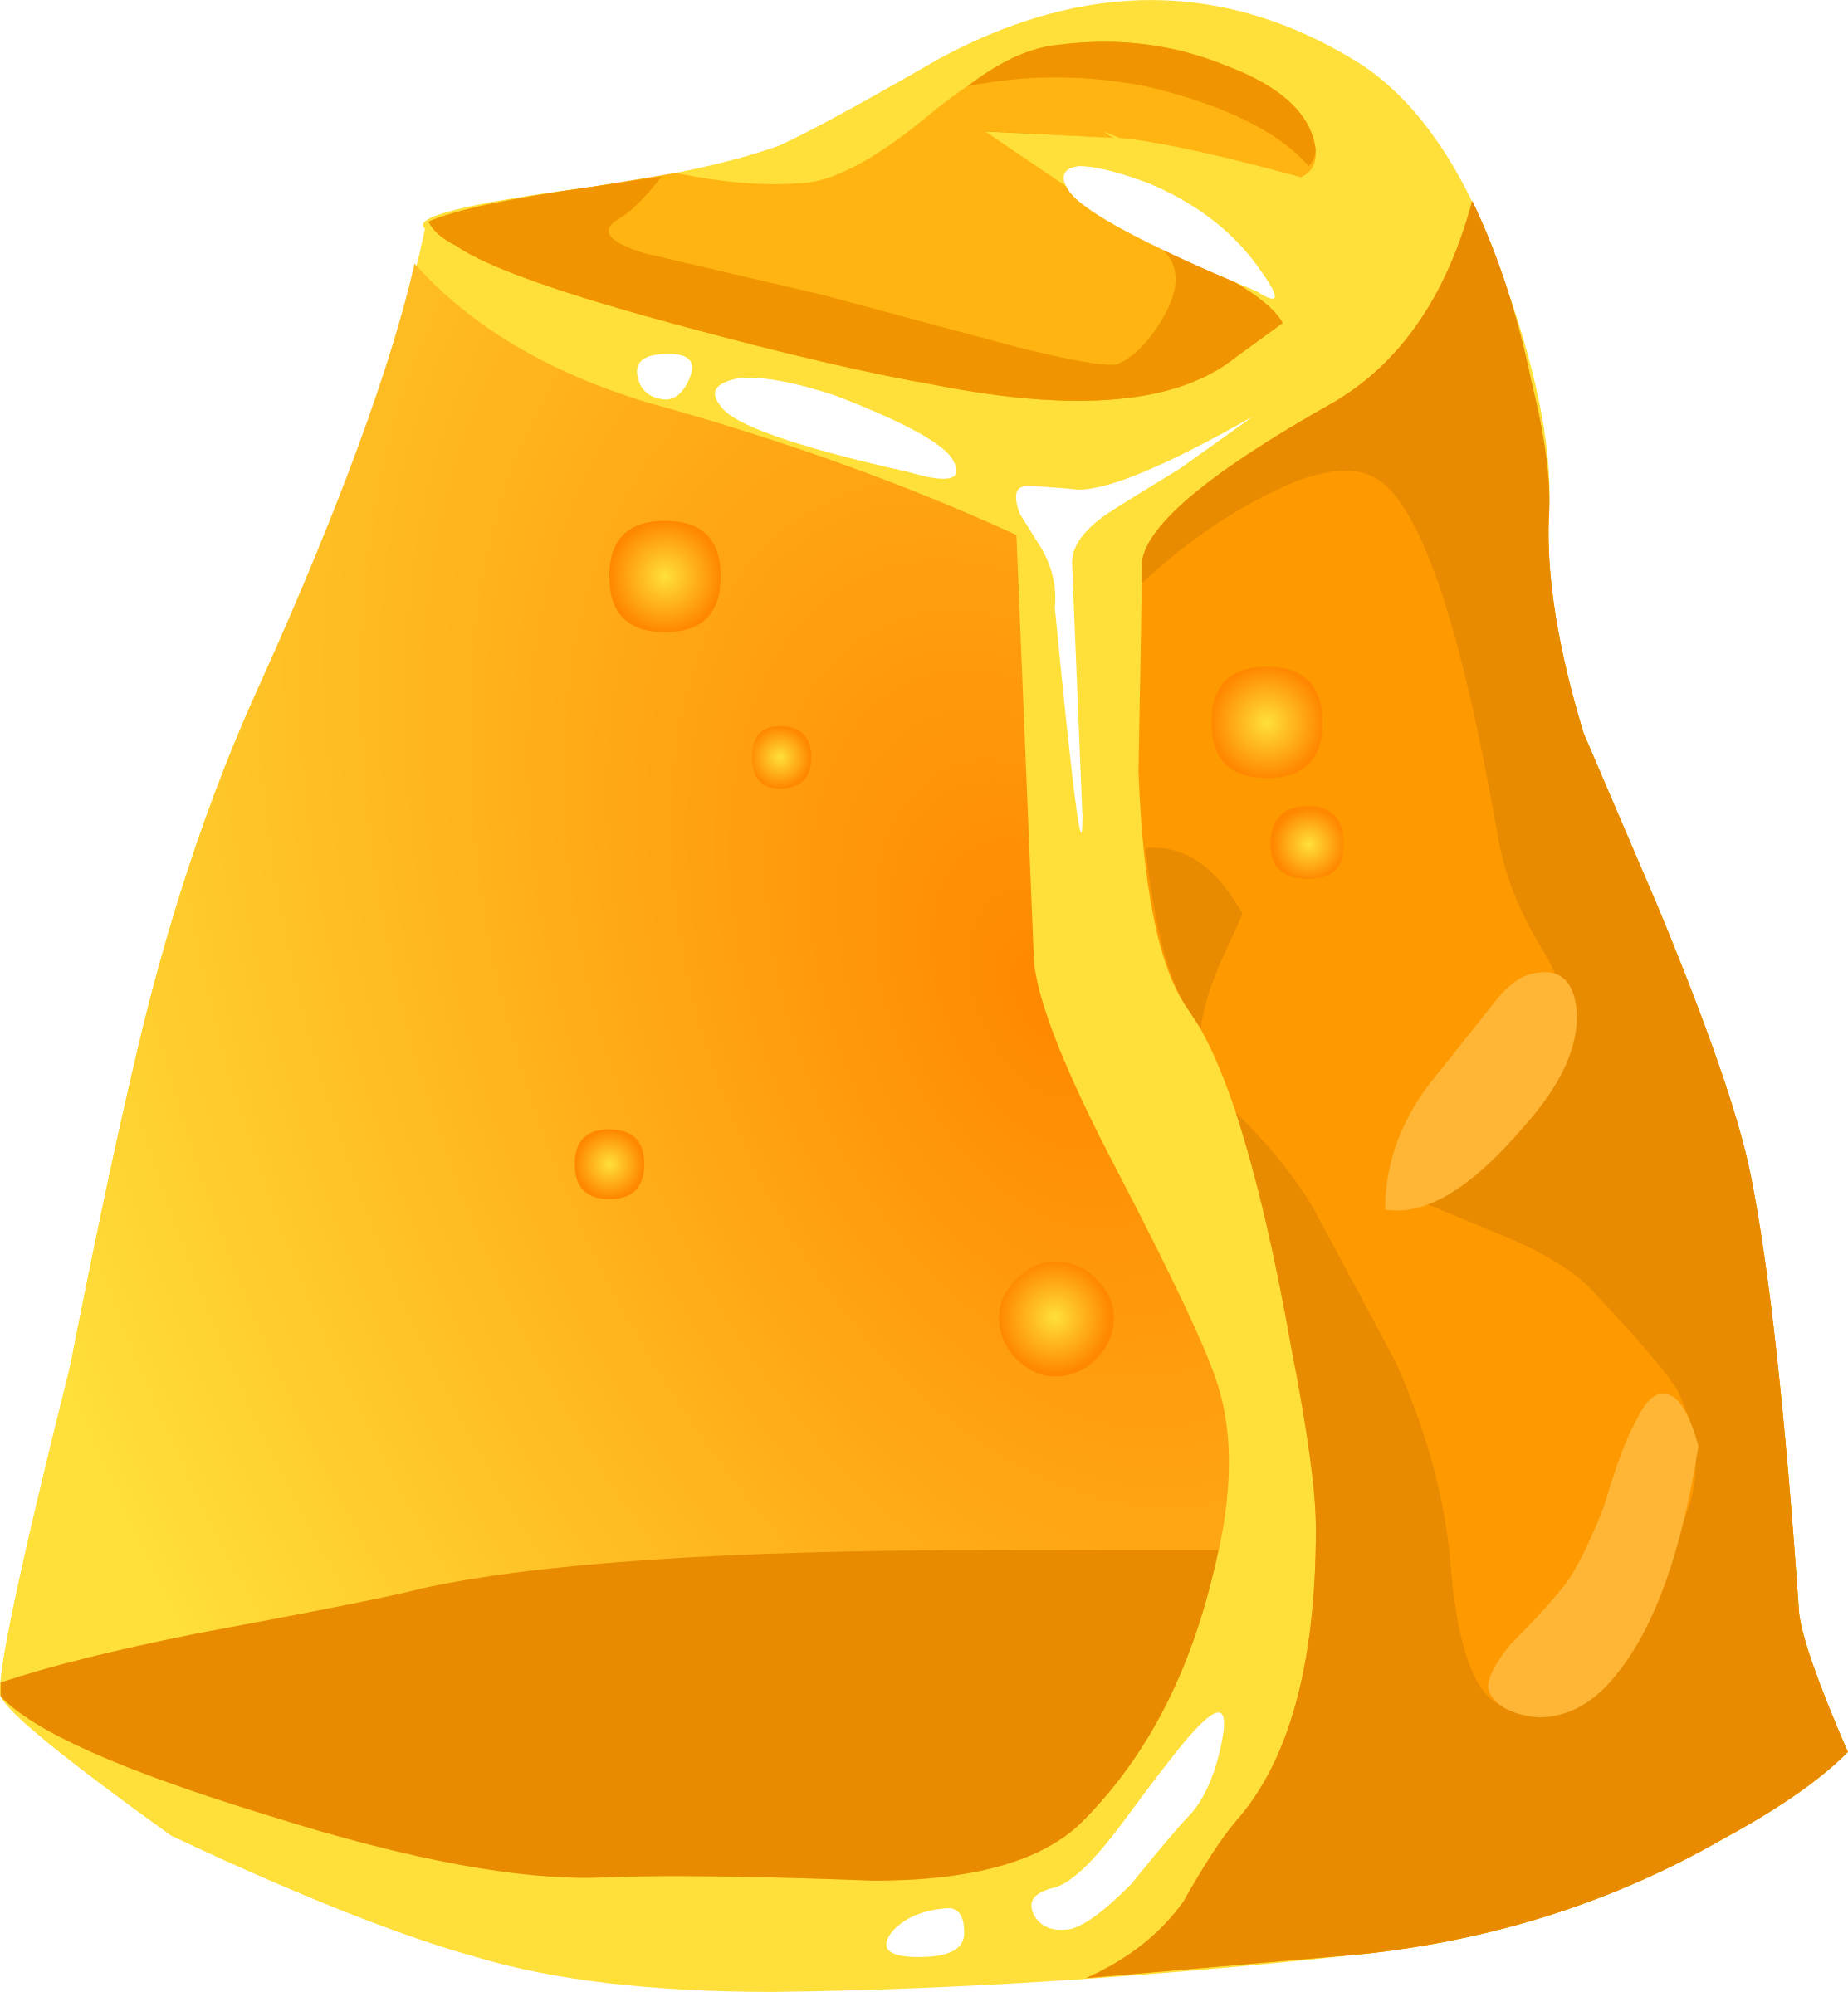 Misc amber icons png. Gem clipart svg